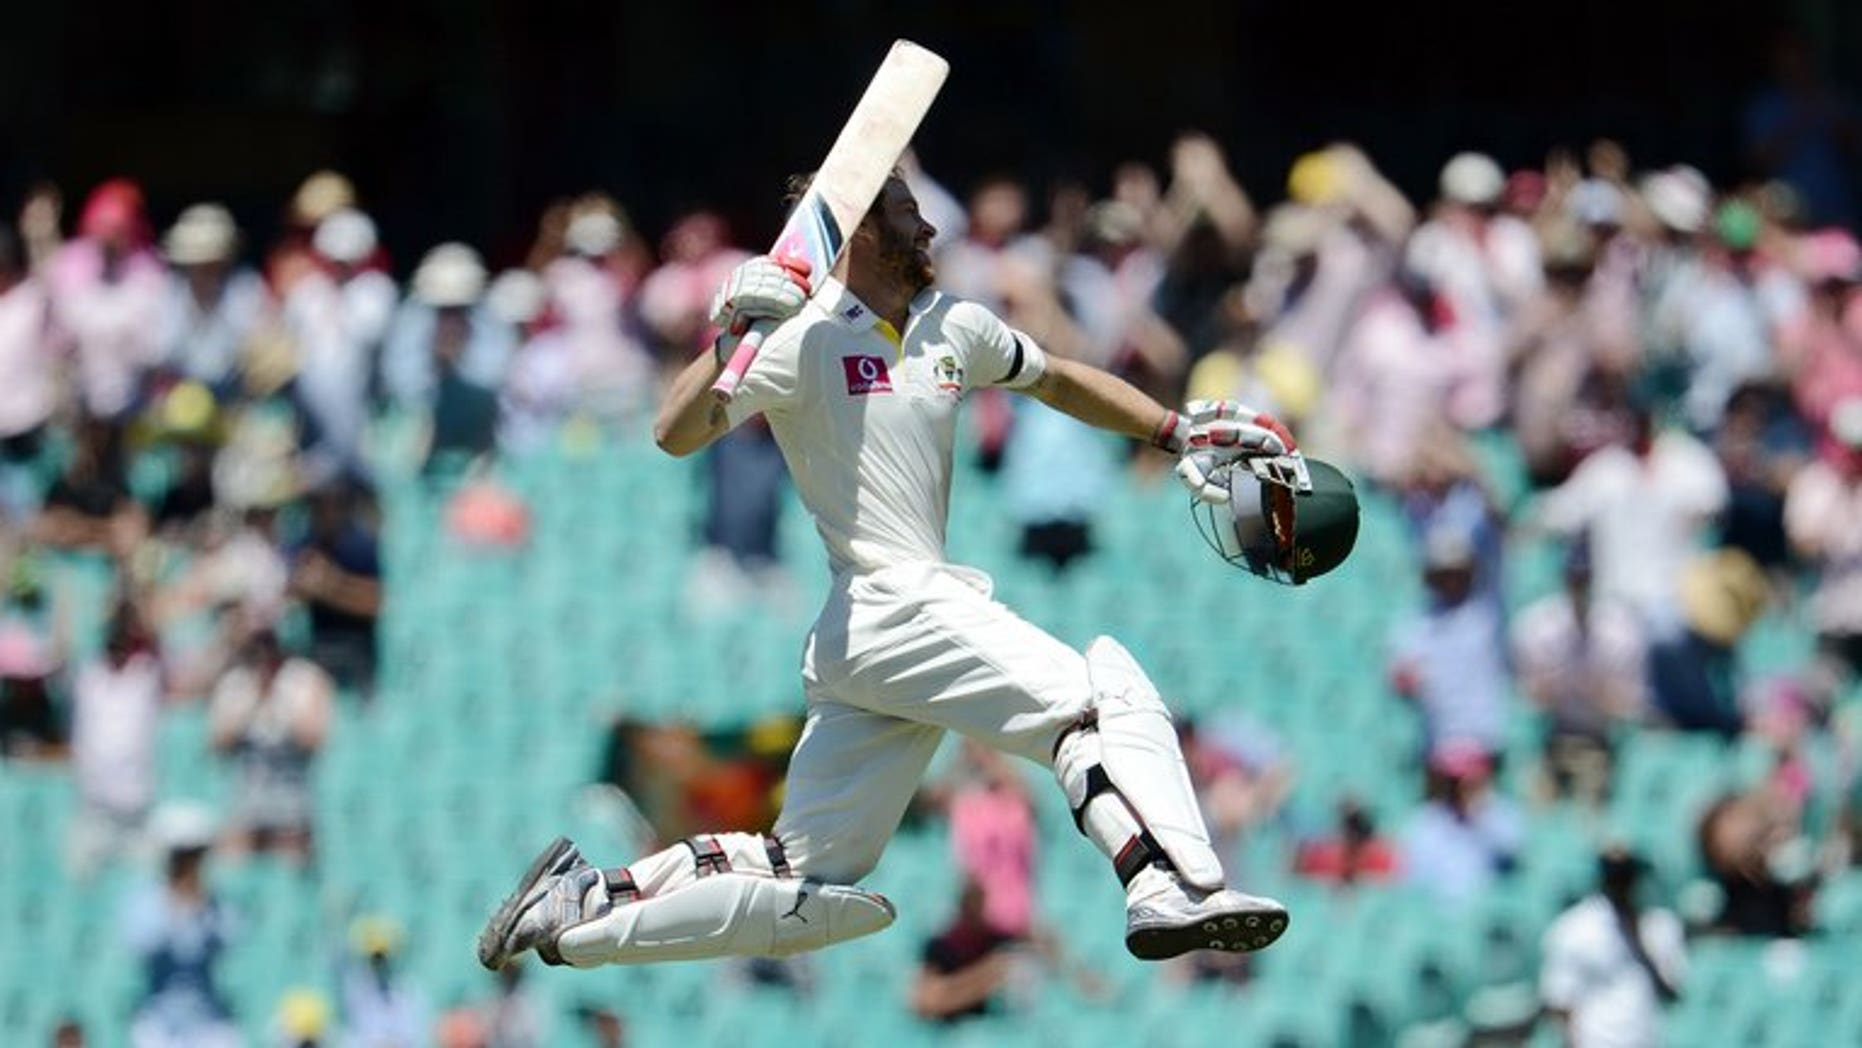 Australian batsman Matthew Wade celebrates after scoring a century at the Sydney Cricket Ground on January 5, 2013. Wade has no problems about giving up his wicketkeeping role if he can earn a place in Australia's Ashes side as a specialist batsman.